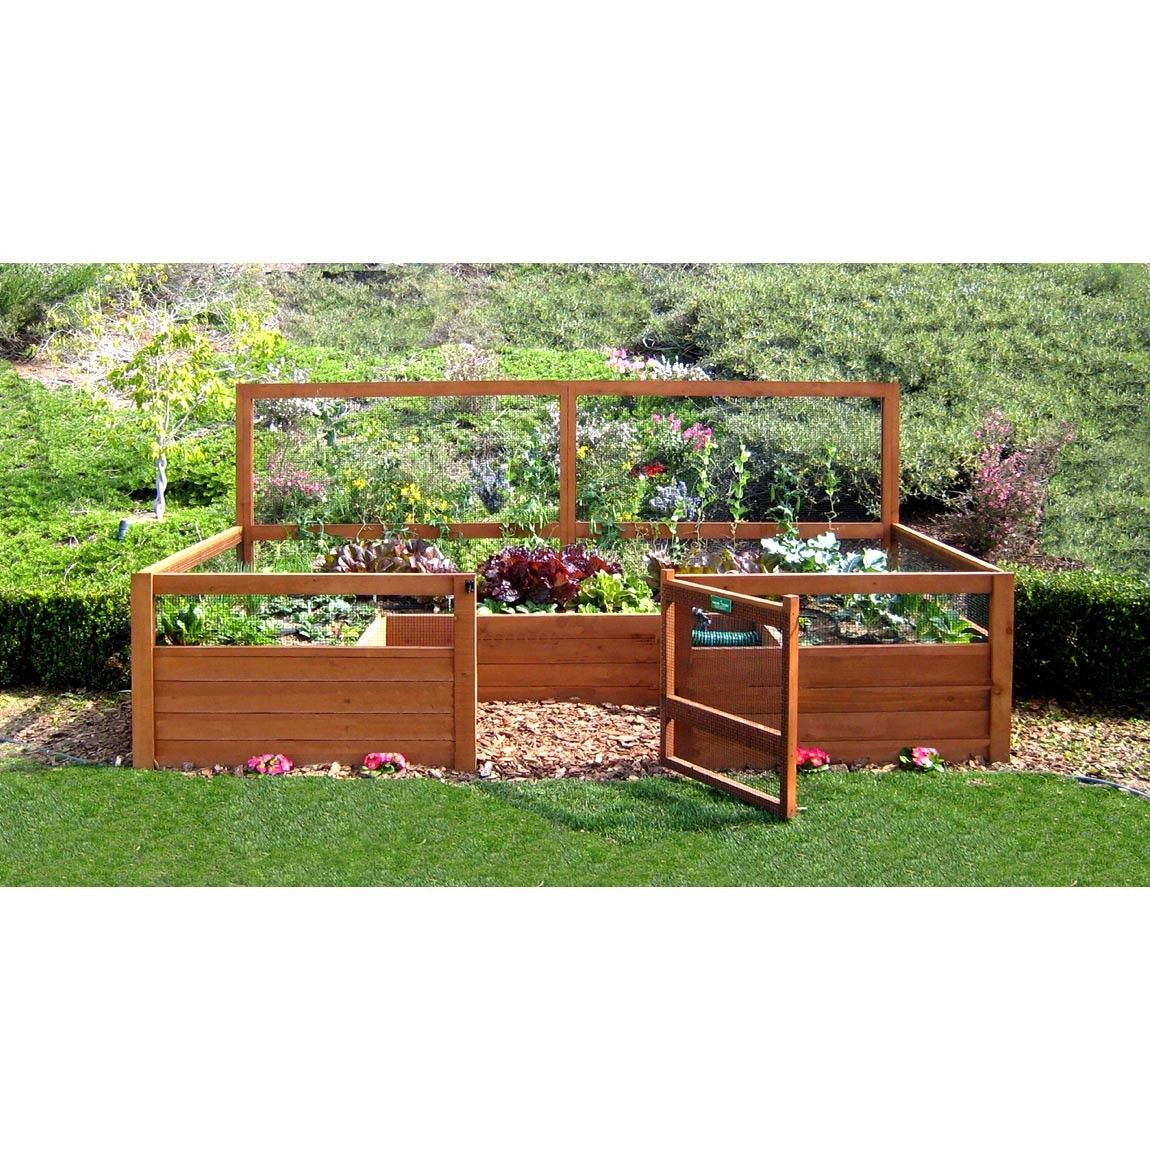 Hortalizas En Macetas Cedar Complete Raised Garden Bed Kit 8 39 X 12 39 X 20